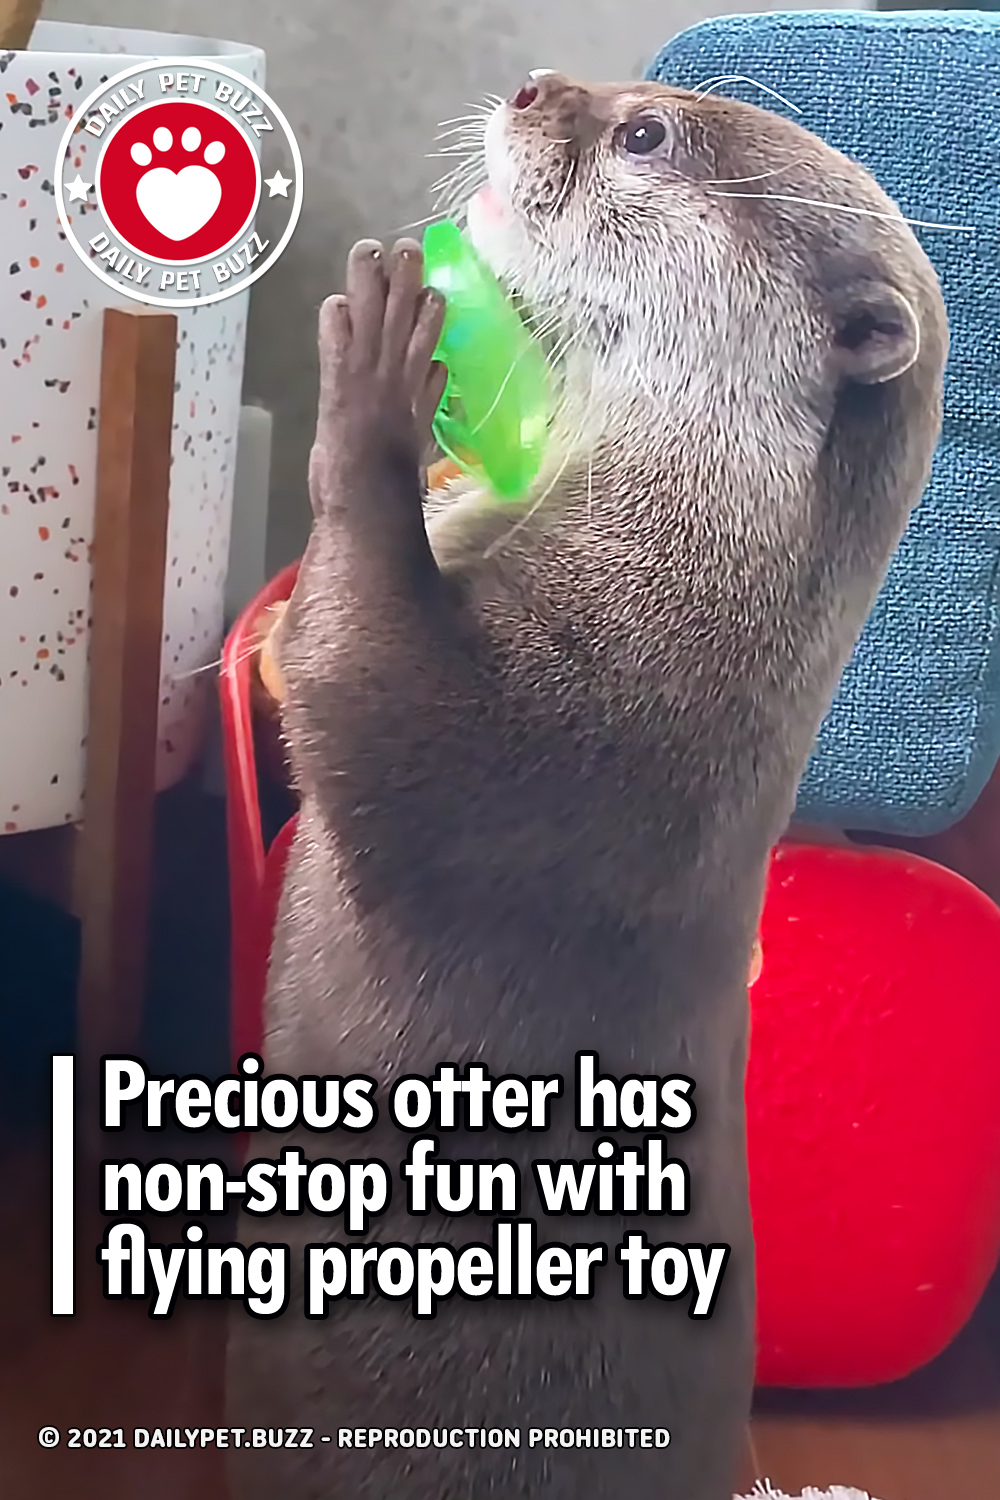 Precious otter has non-stop fun with flying propeller toy